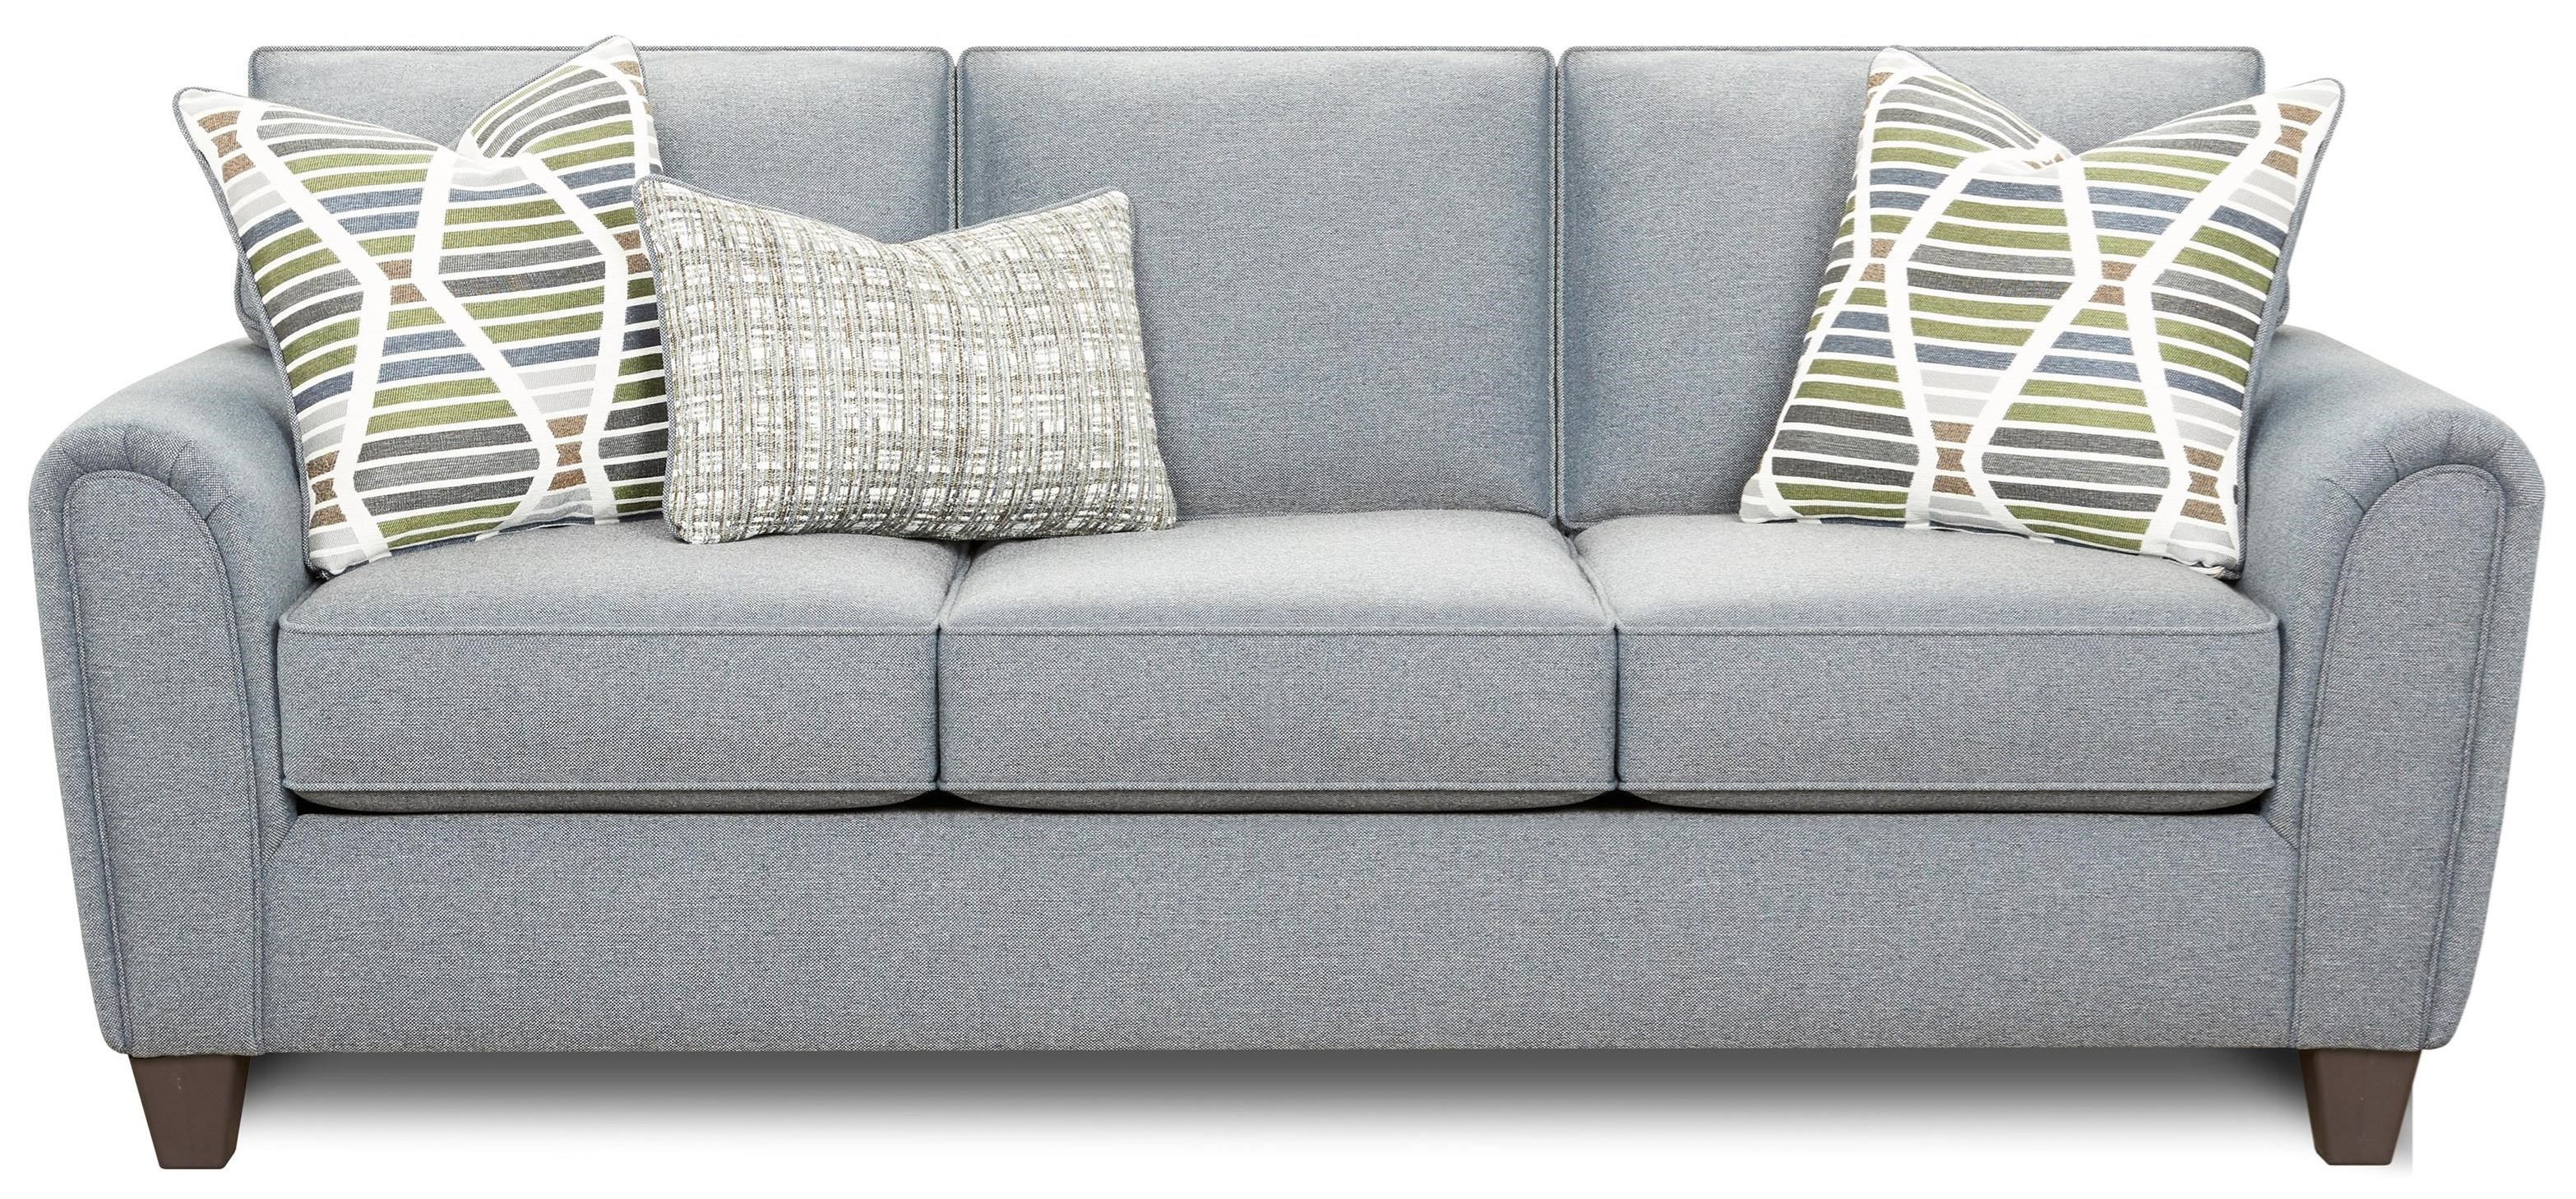 49-00 Sofa Sleeper by Fusion Furniture at Prime Brothers Furniture